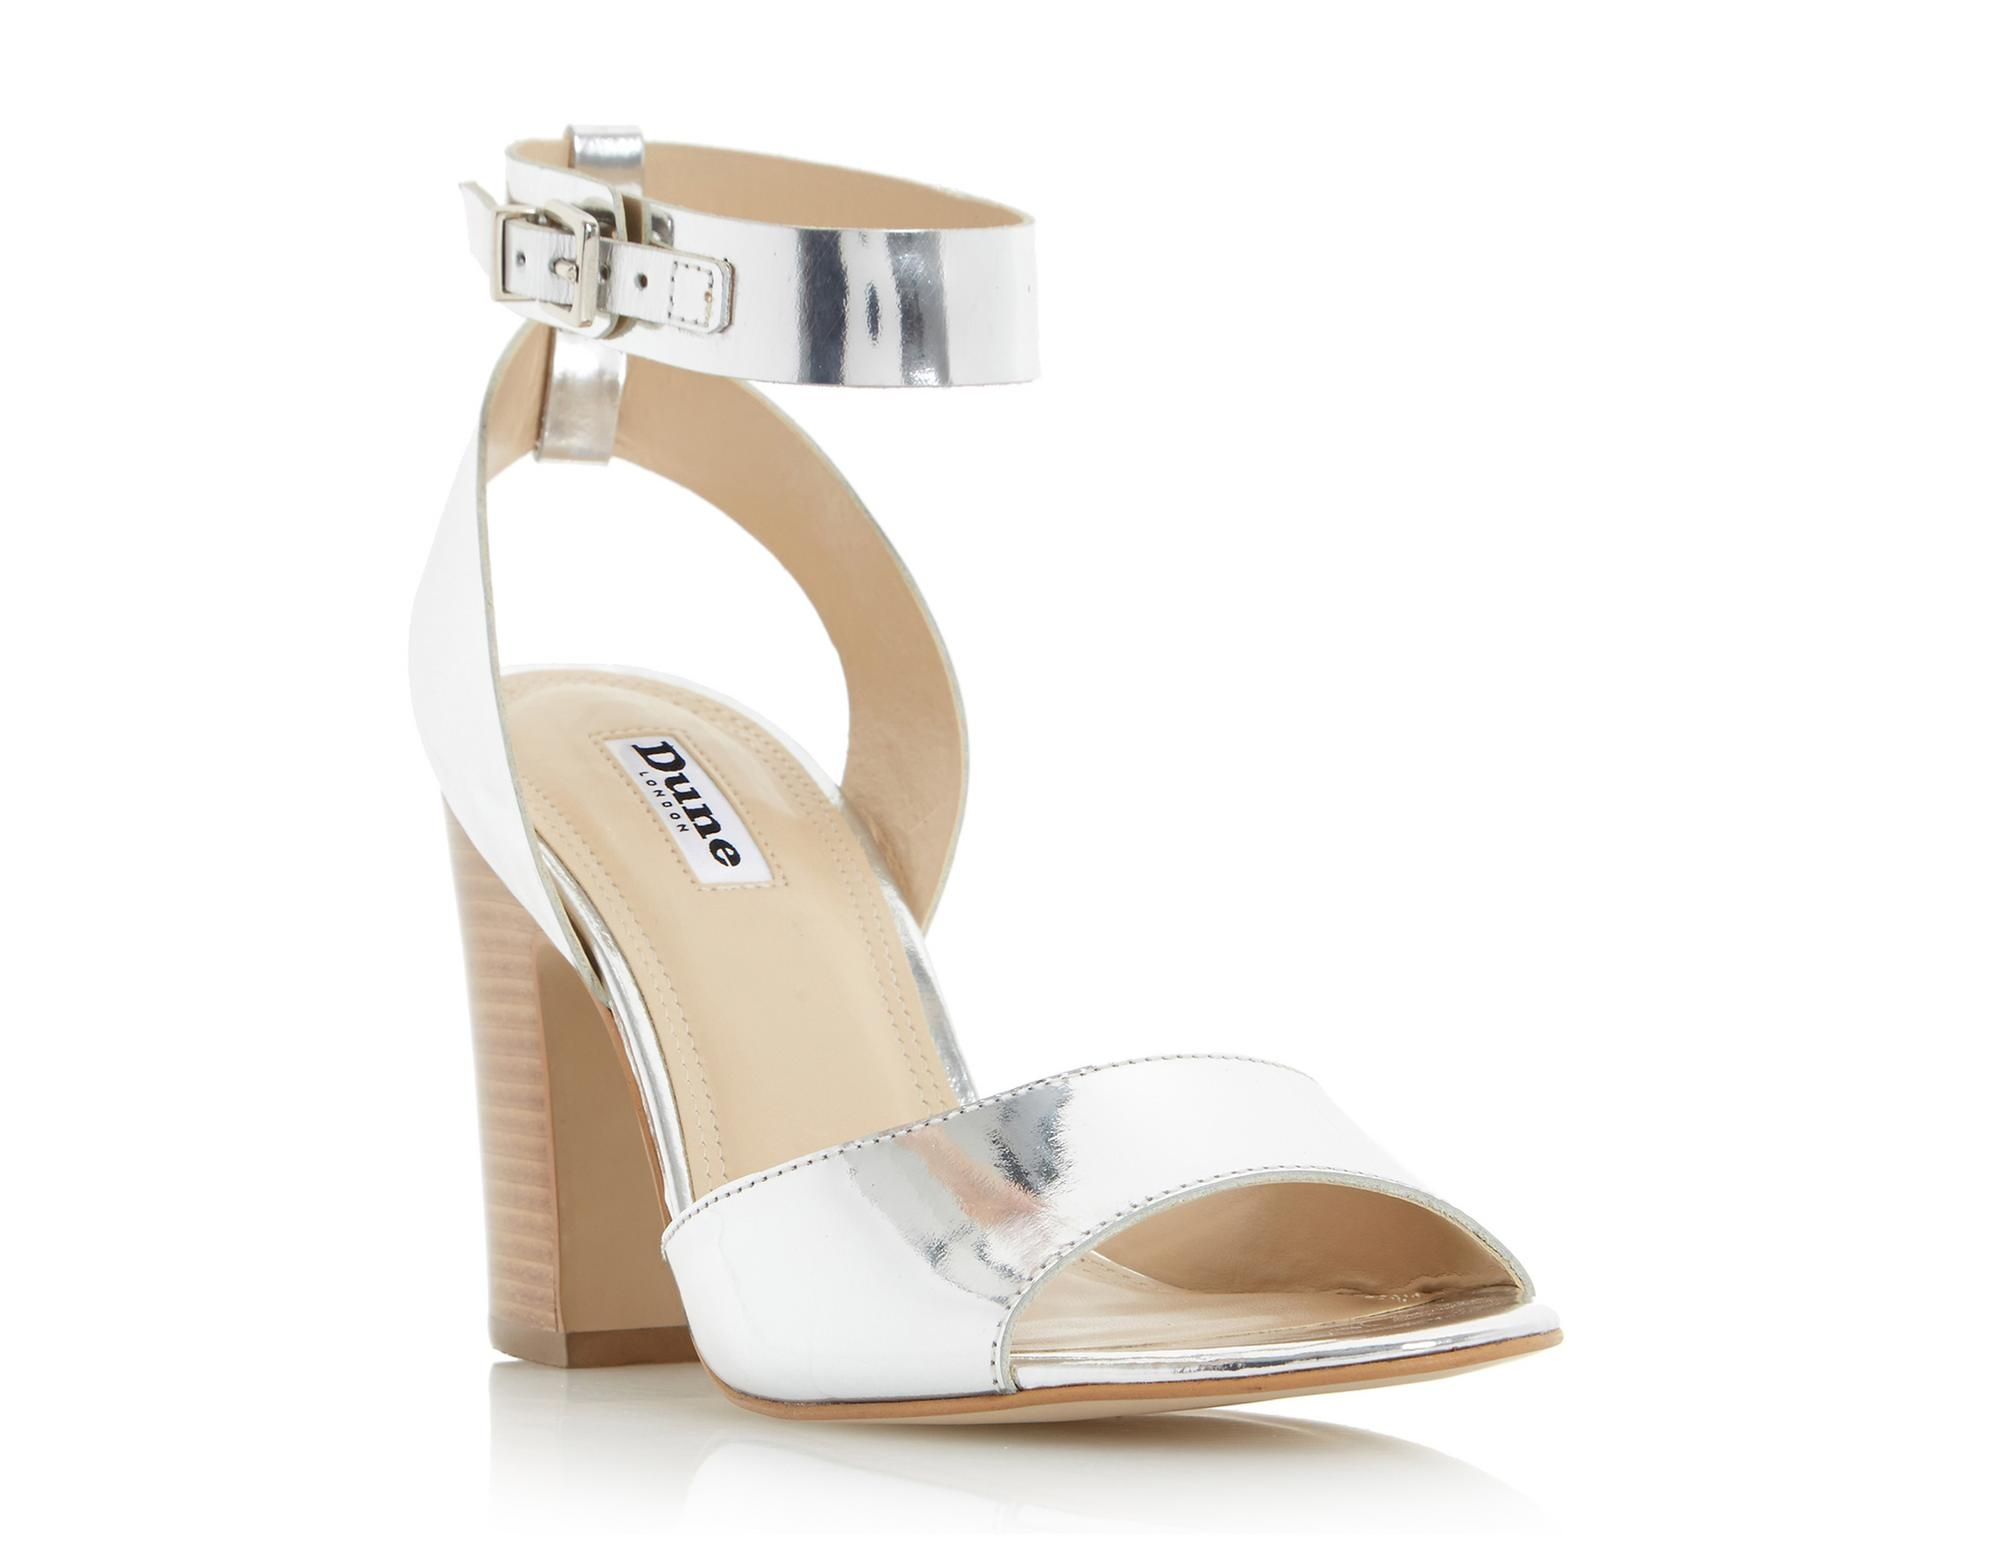 This demure two part ankle strap sandal is stylish yet sturdy. It features a mid block heel, ankle strap buckle fastening and an open toe. Work the tomboy look by styling it with dungarees and a striped jersey top.